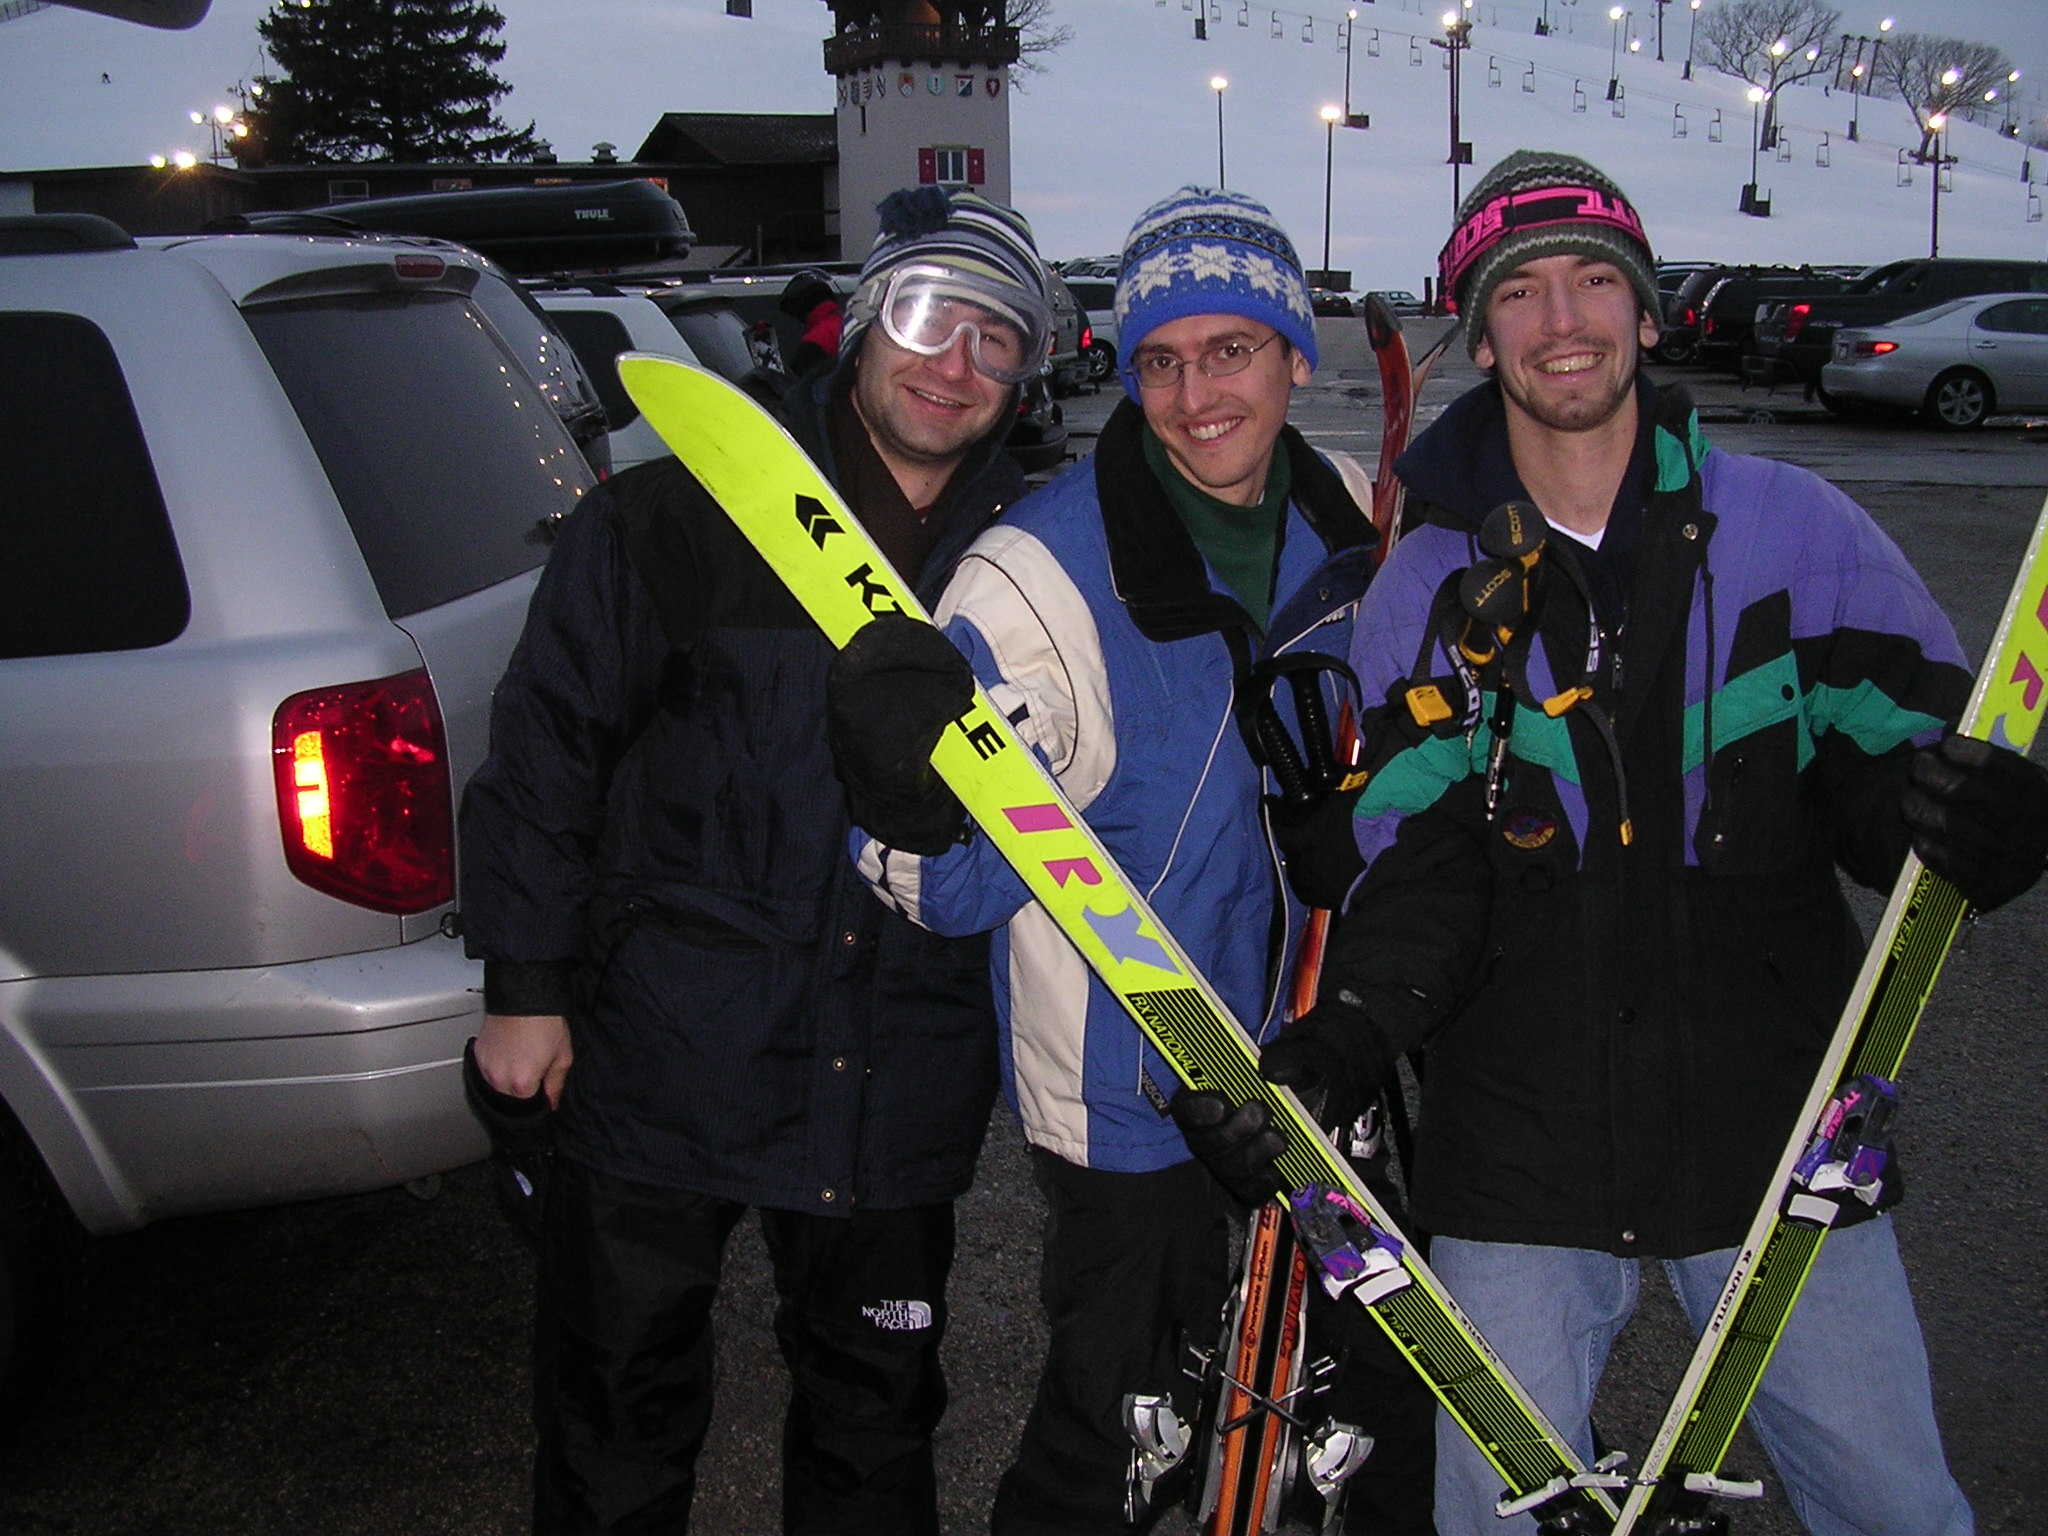 80's style skiing at Wilmot